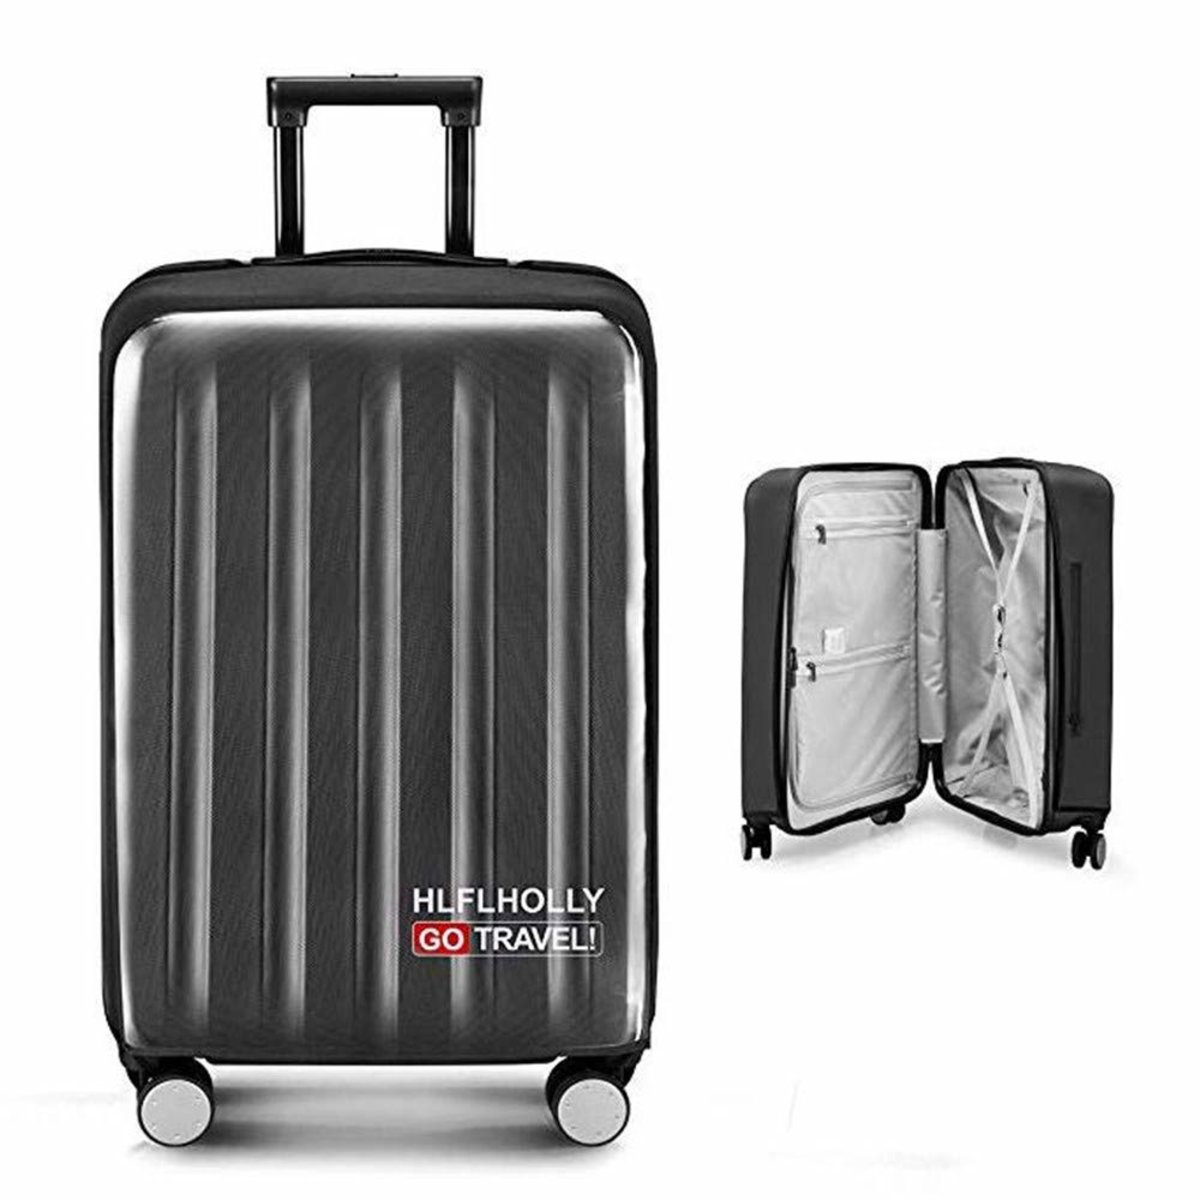 Removing-Free Travel Luggage Cover, black (28in)